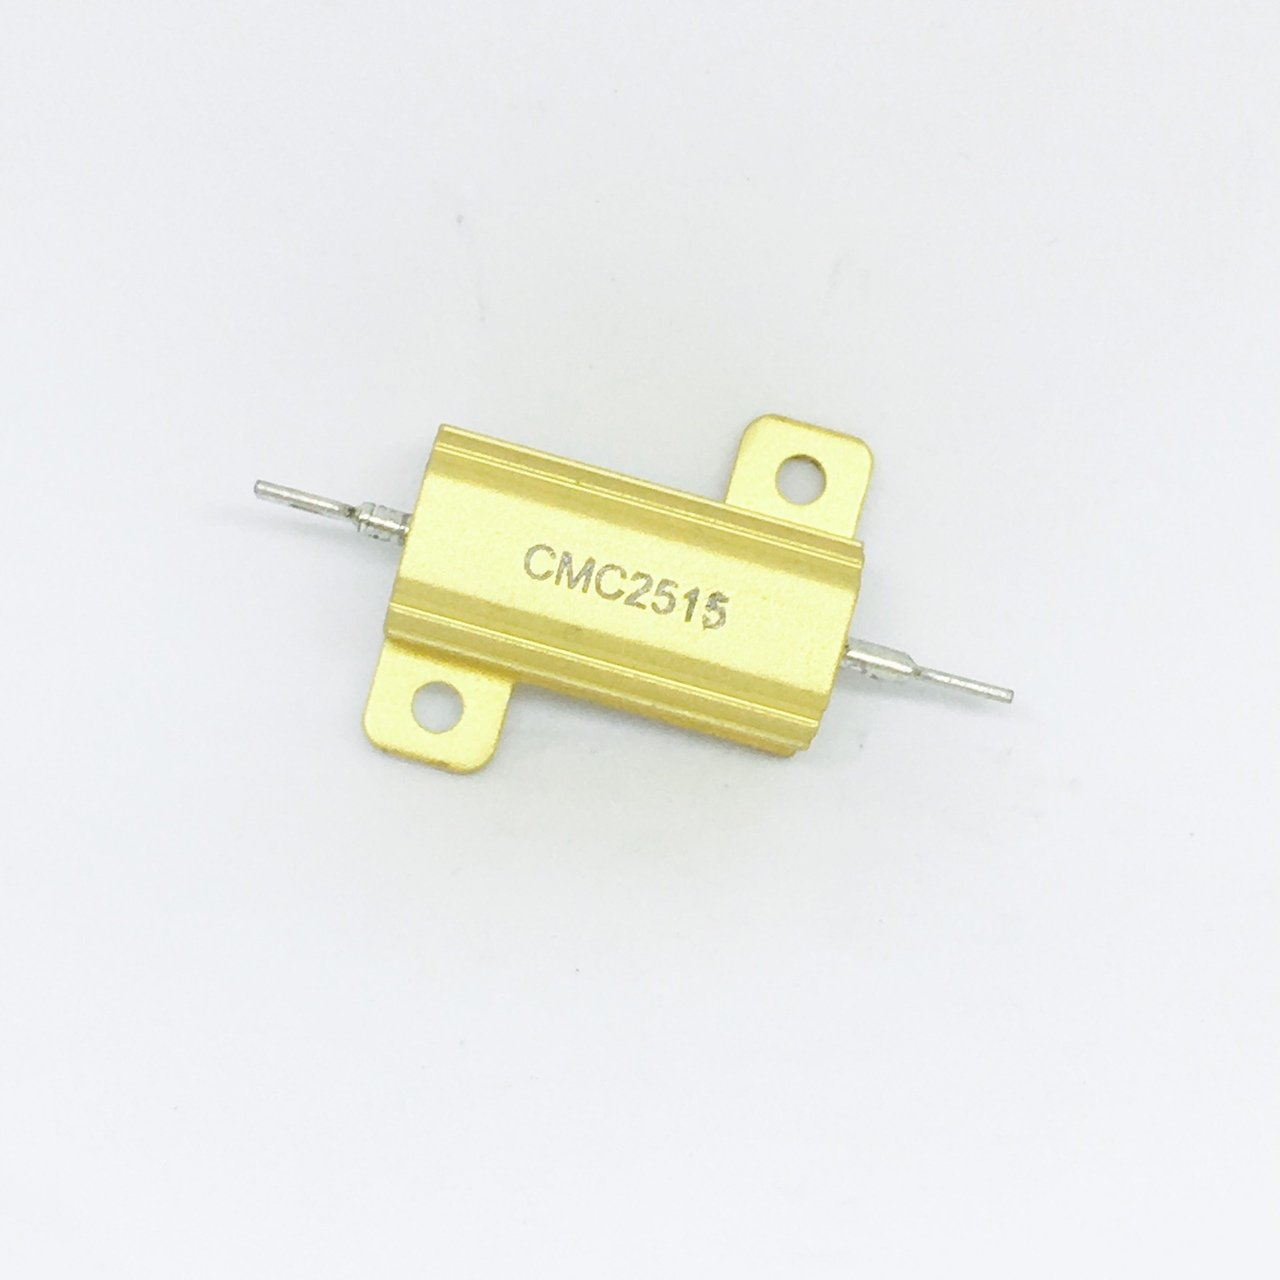 CMC2515 - HONEYWELL SENSING AND CONTROL - RES WIREWOUND 15 OHM 1% 25W ±20ppm/°C ALUMINUM HOUSED AXL FLANGE MOUNG